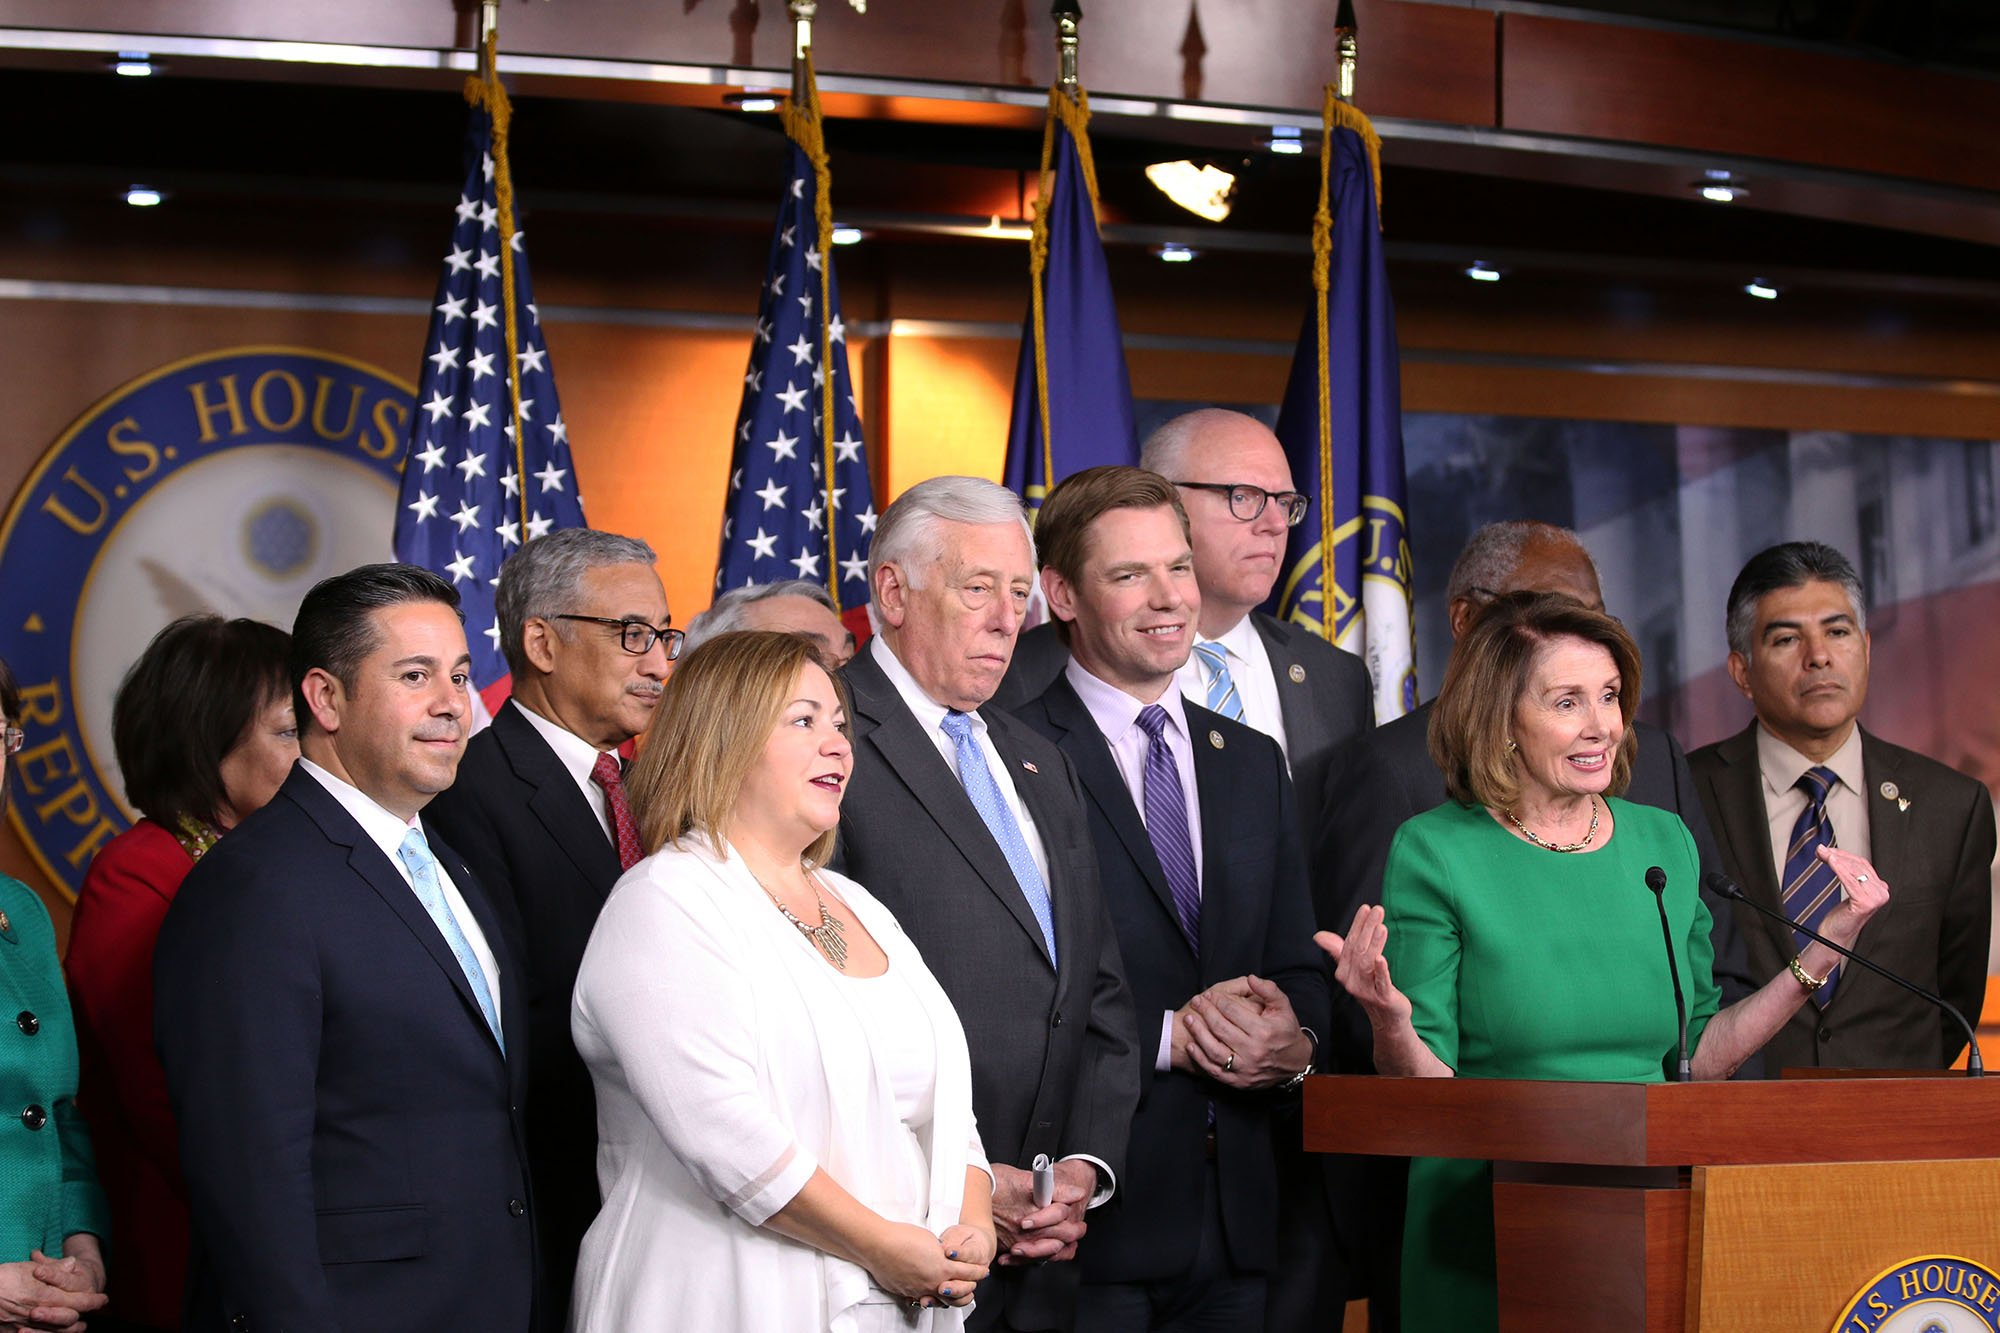 House Minority Leader Nancy Pelosi, who spearheaded passage of the Affordable Care Act when she was speaker seven years ago, and other Democrats speaking after the failure of a GOP plan to overturn the law. (Source: Dustin Quiroz/Cronkite News)